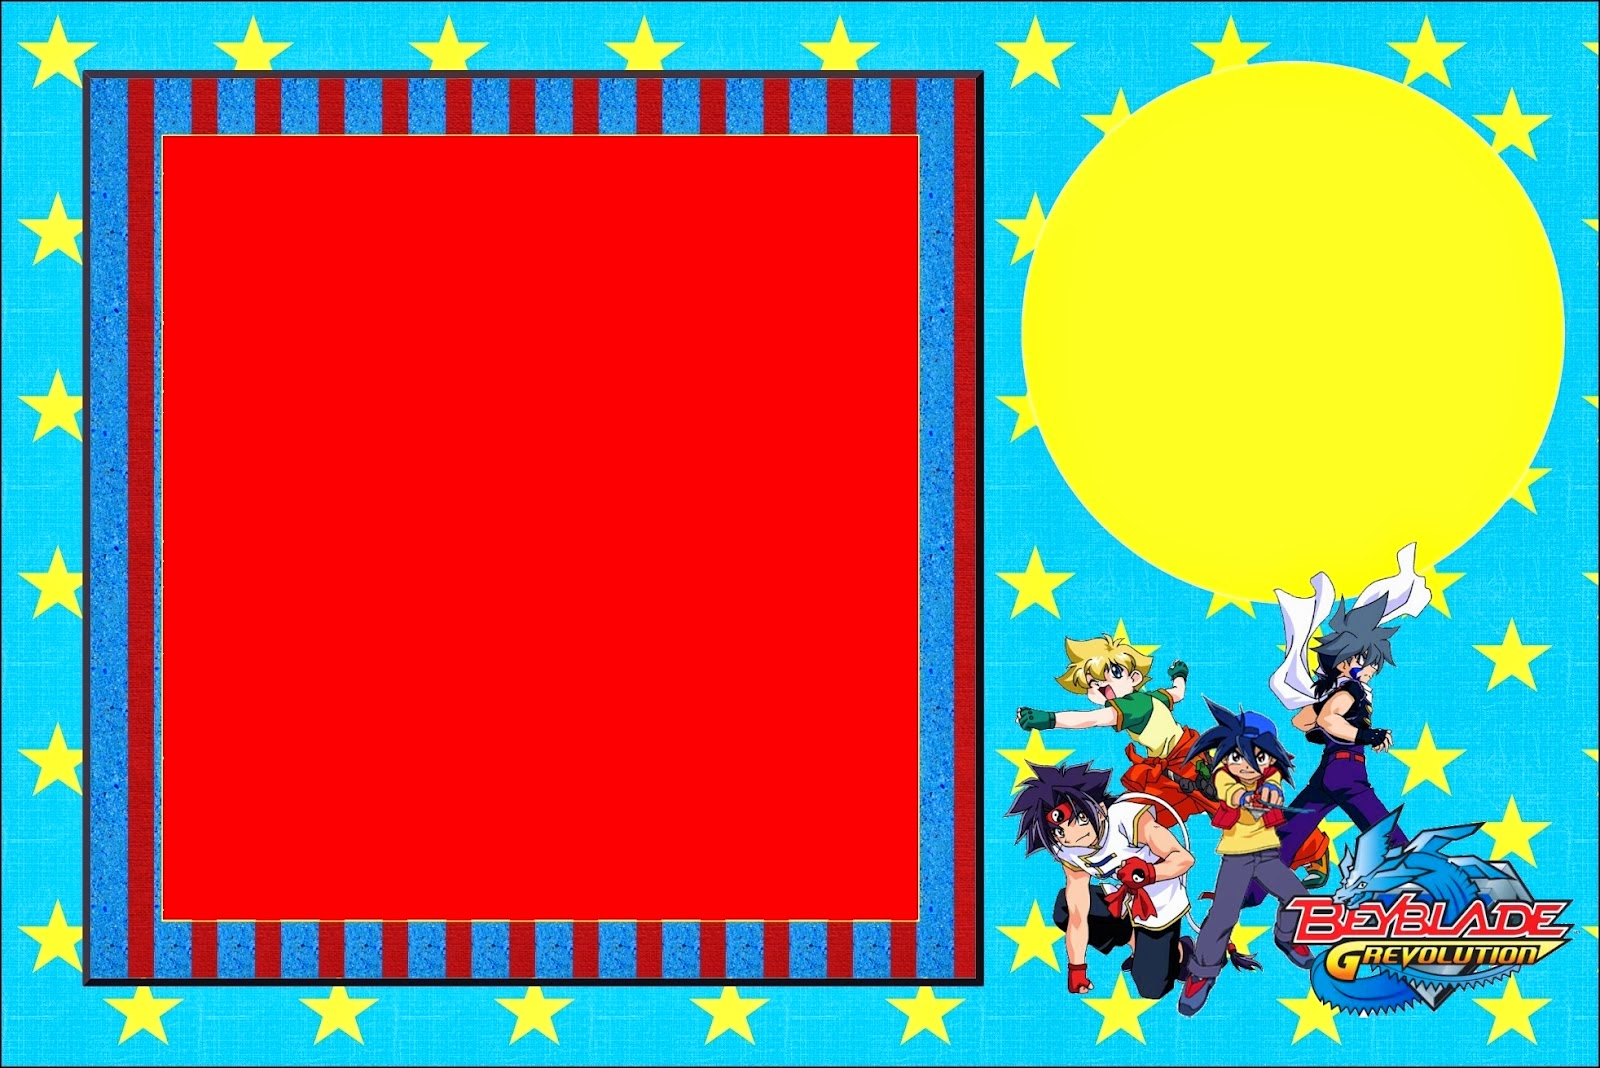 Beyblade Free Printable Invitations Cards Or Backgrounds